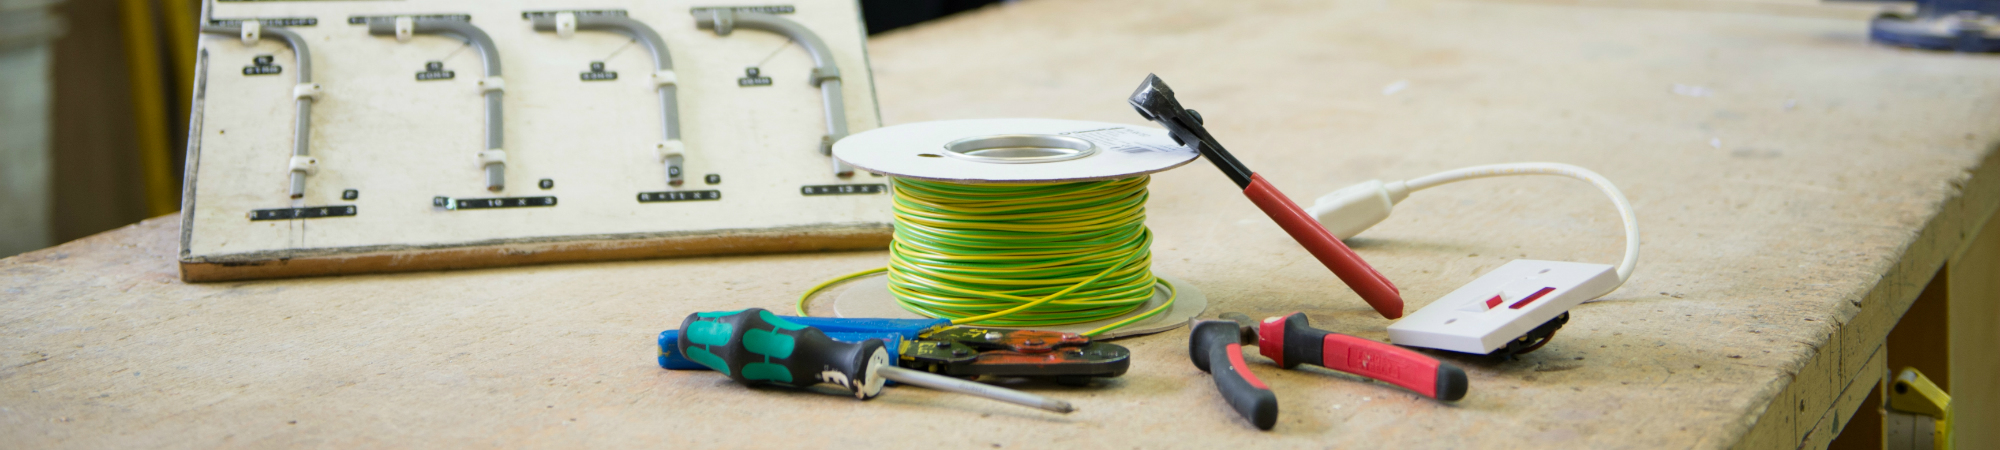 Electrical Engineering Wiring Courses